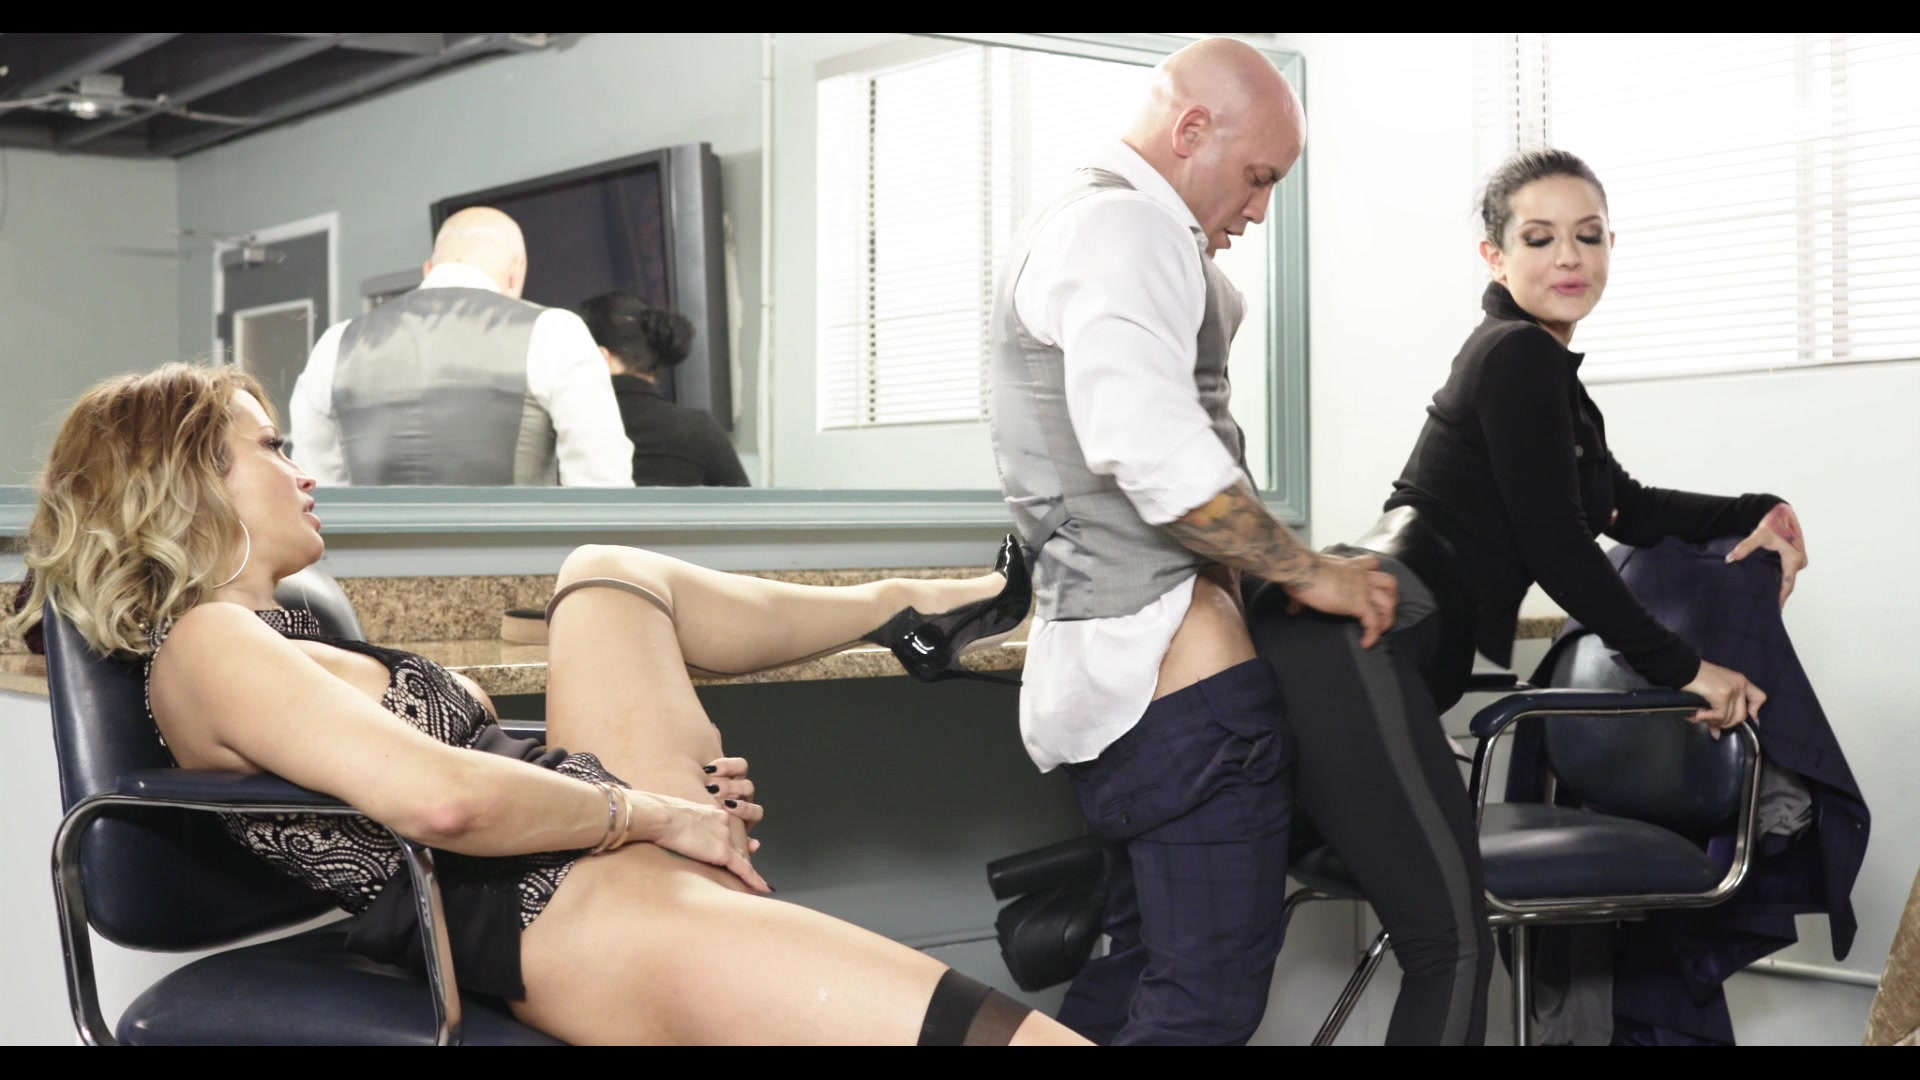 Scene with Jessica Drake, Derrick Pierce and Katrina Jade - image 16 out of 20